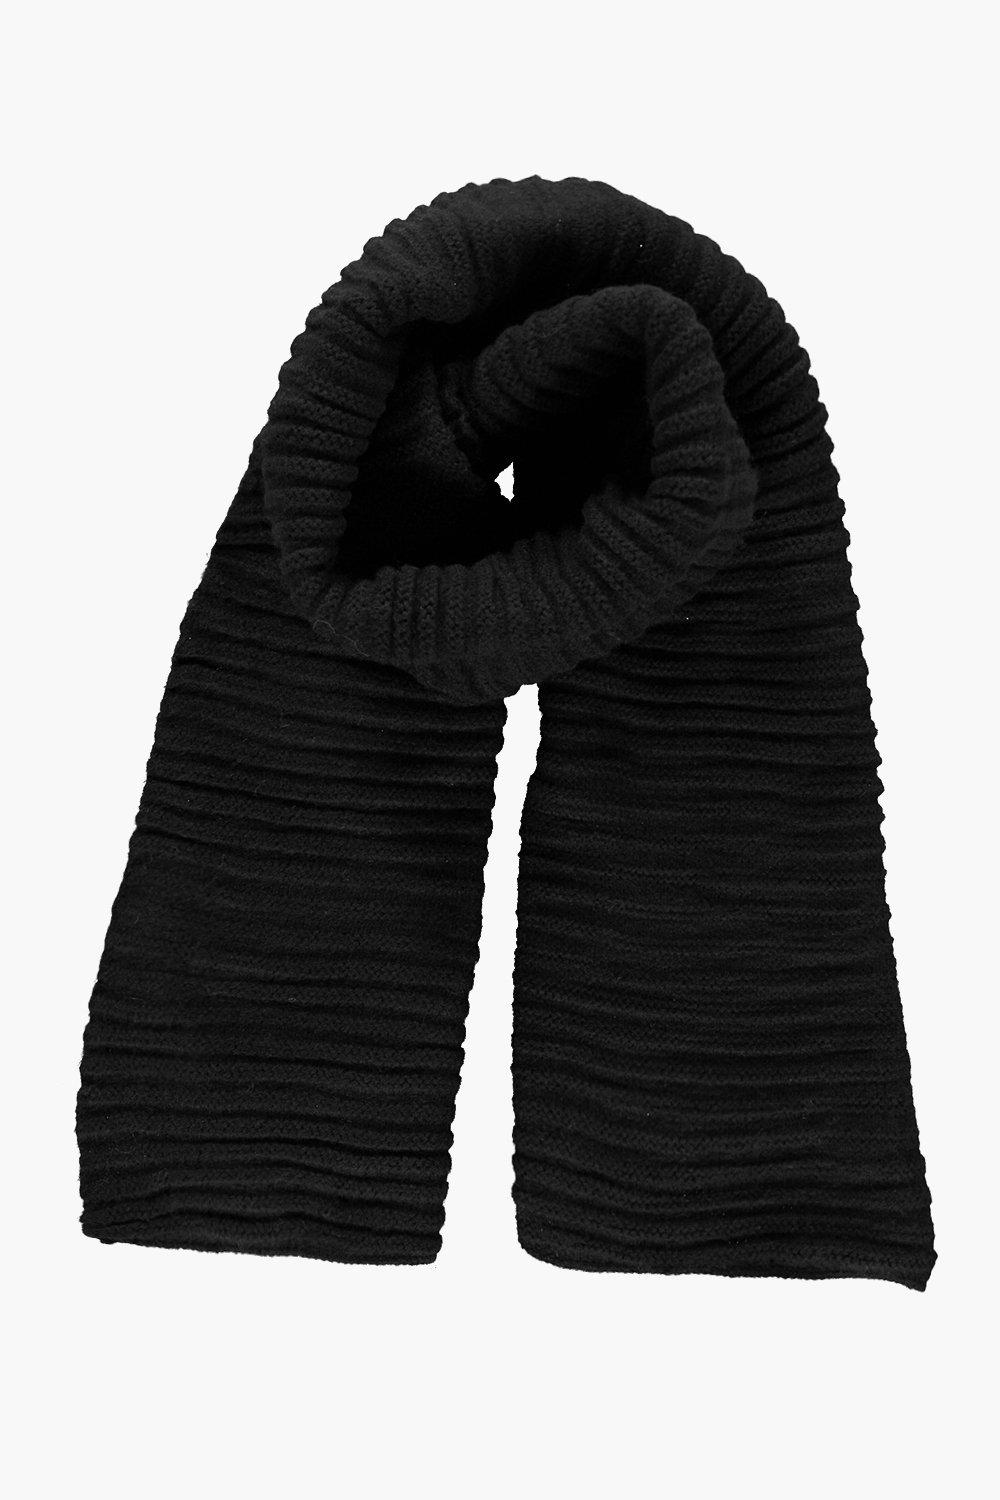 Ebony Super Chunky Rib Knit Scarf